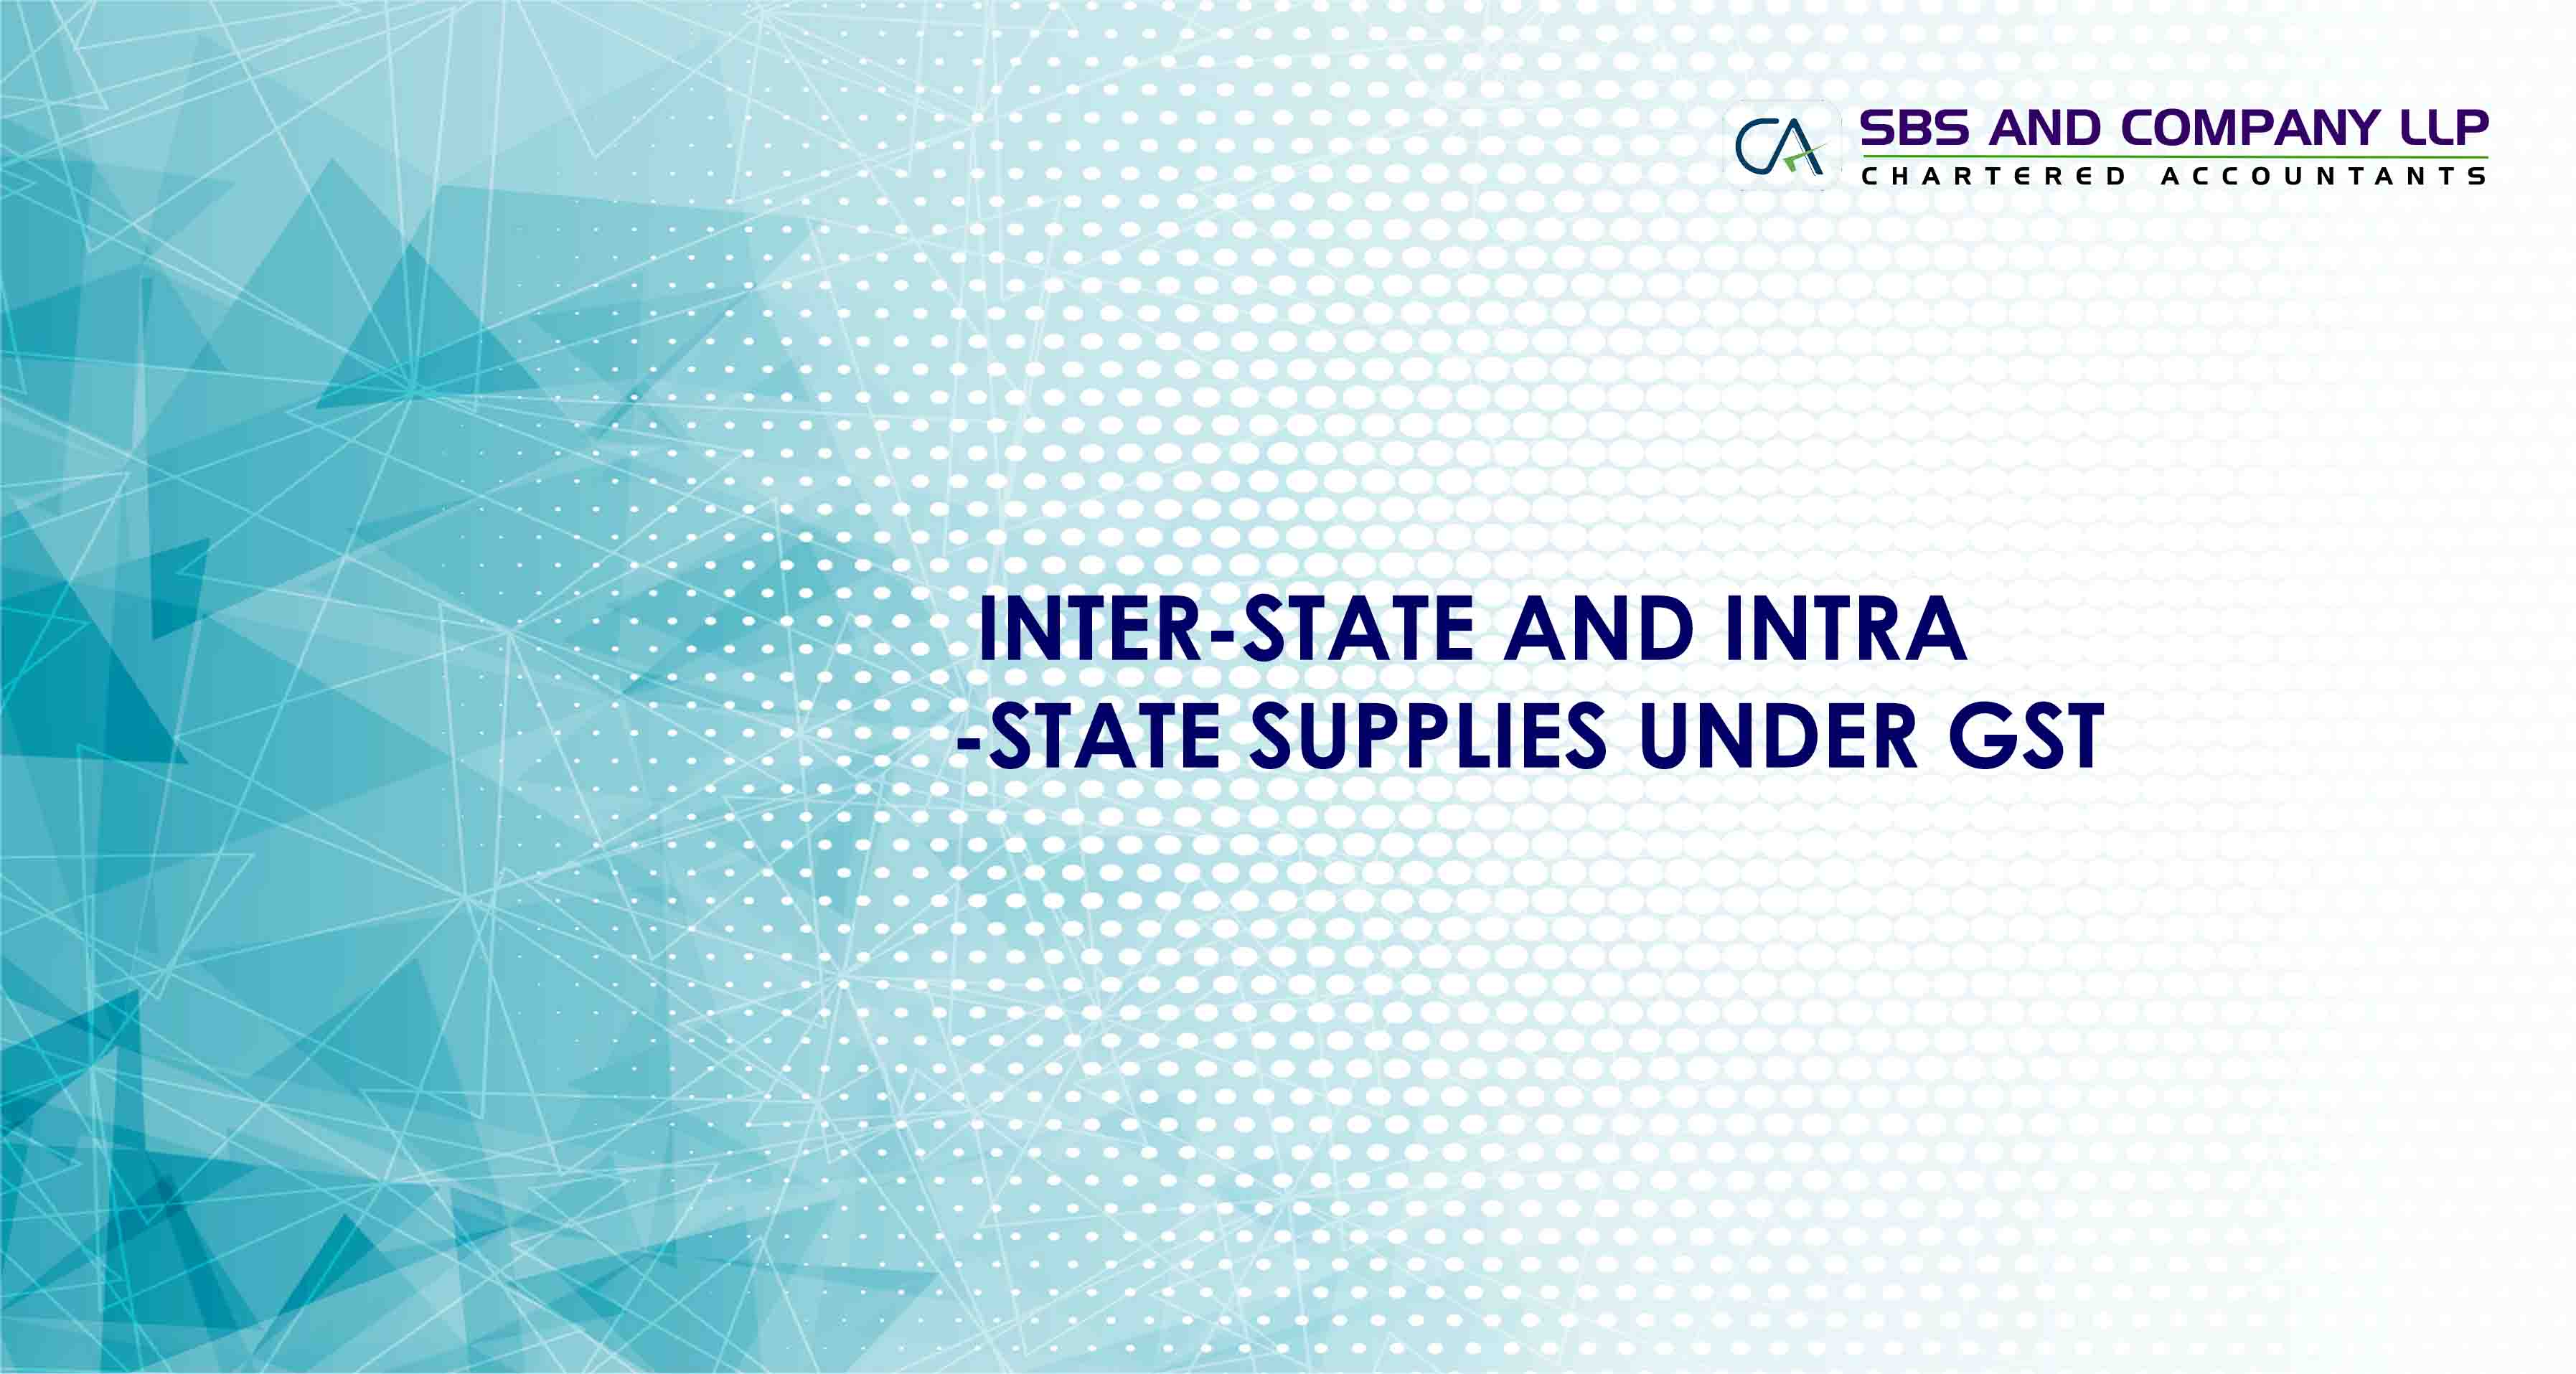 INTER-STATE AND INTRA-STATE SUPPLIES UNDER GST